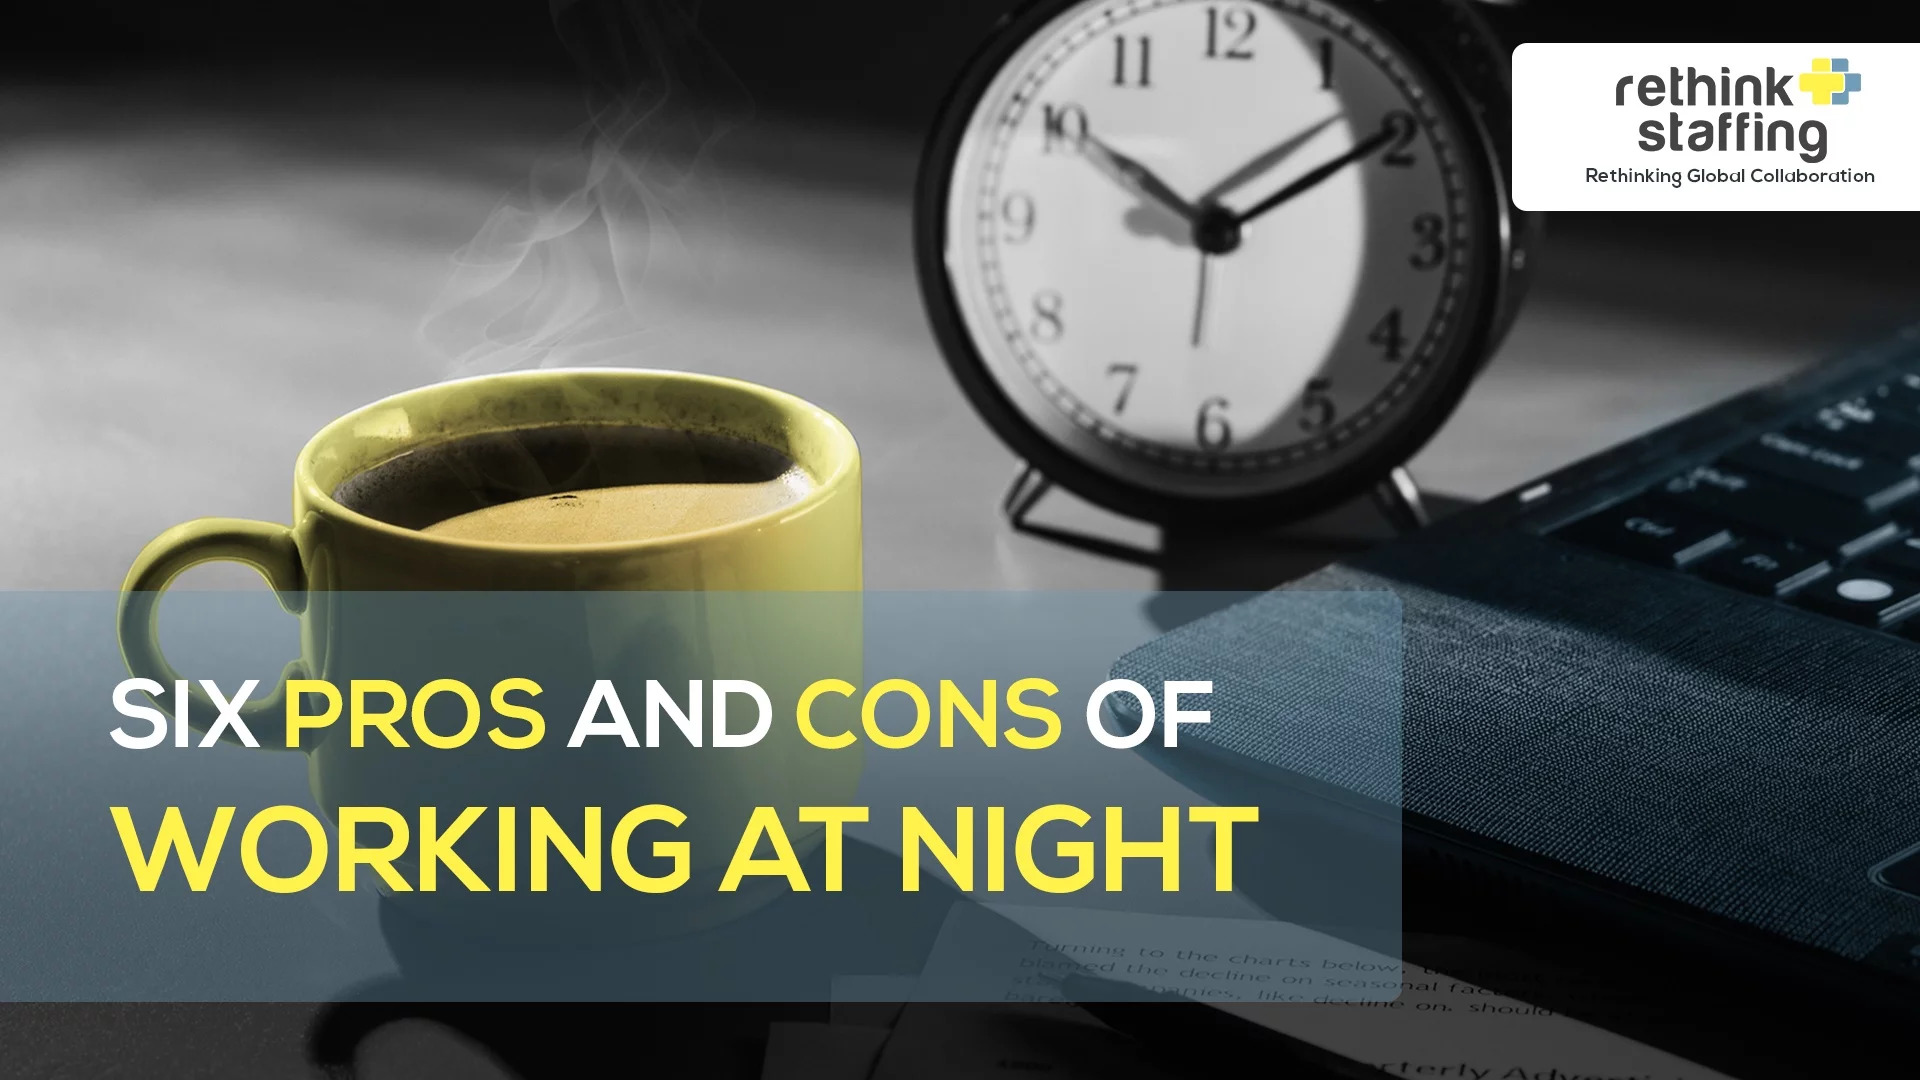 Six Pros and Cons of Working at Night Plus Infographic